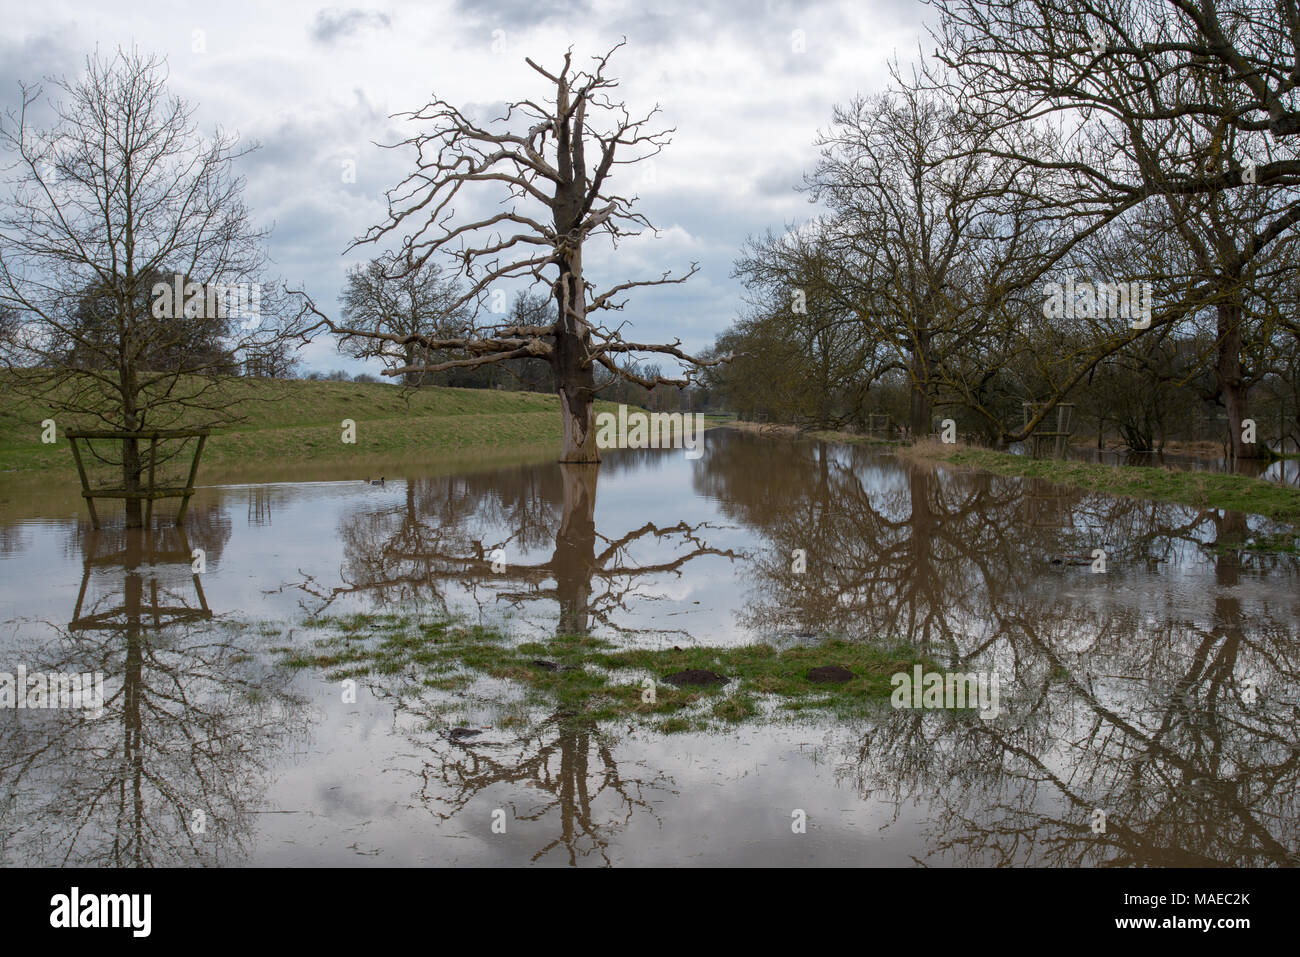 flooded park in the UK with trees partially submerged under water and nice reflections with stormy skies in background - Stock Image